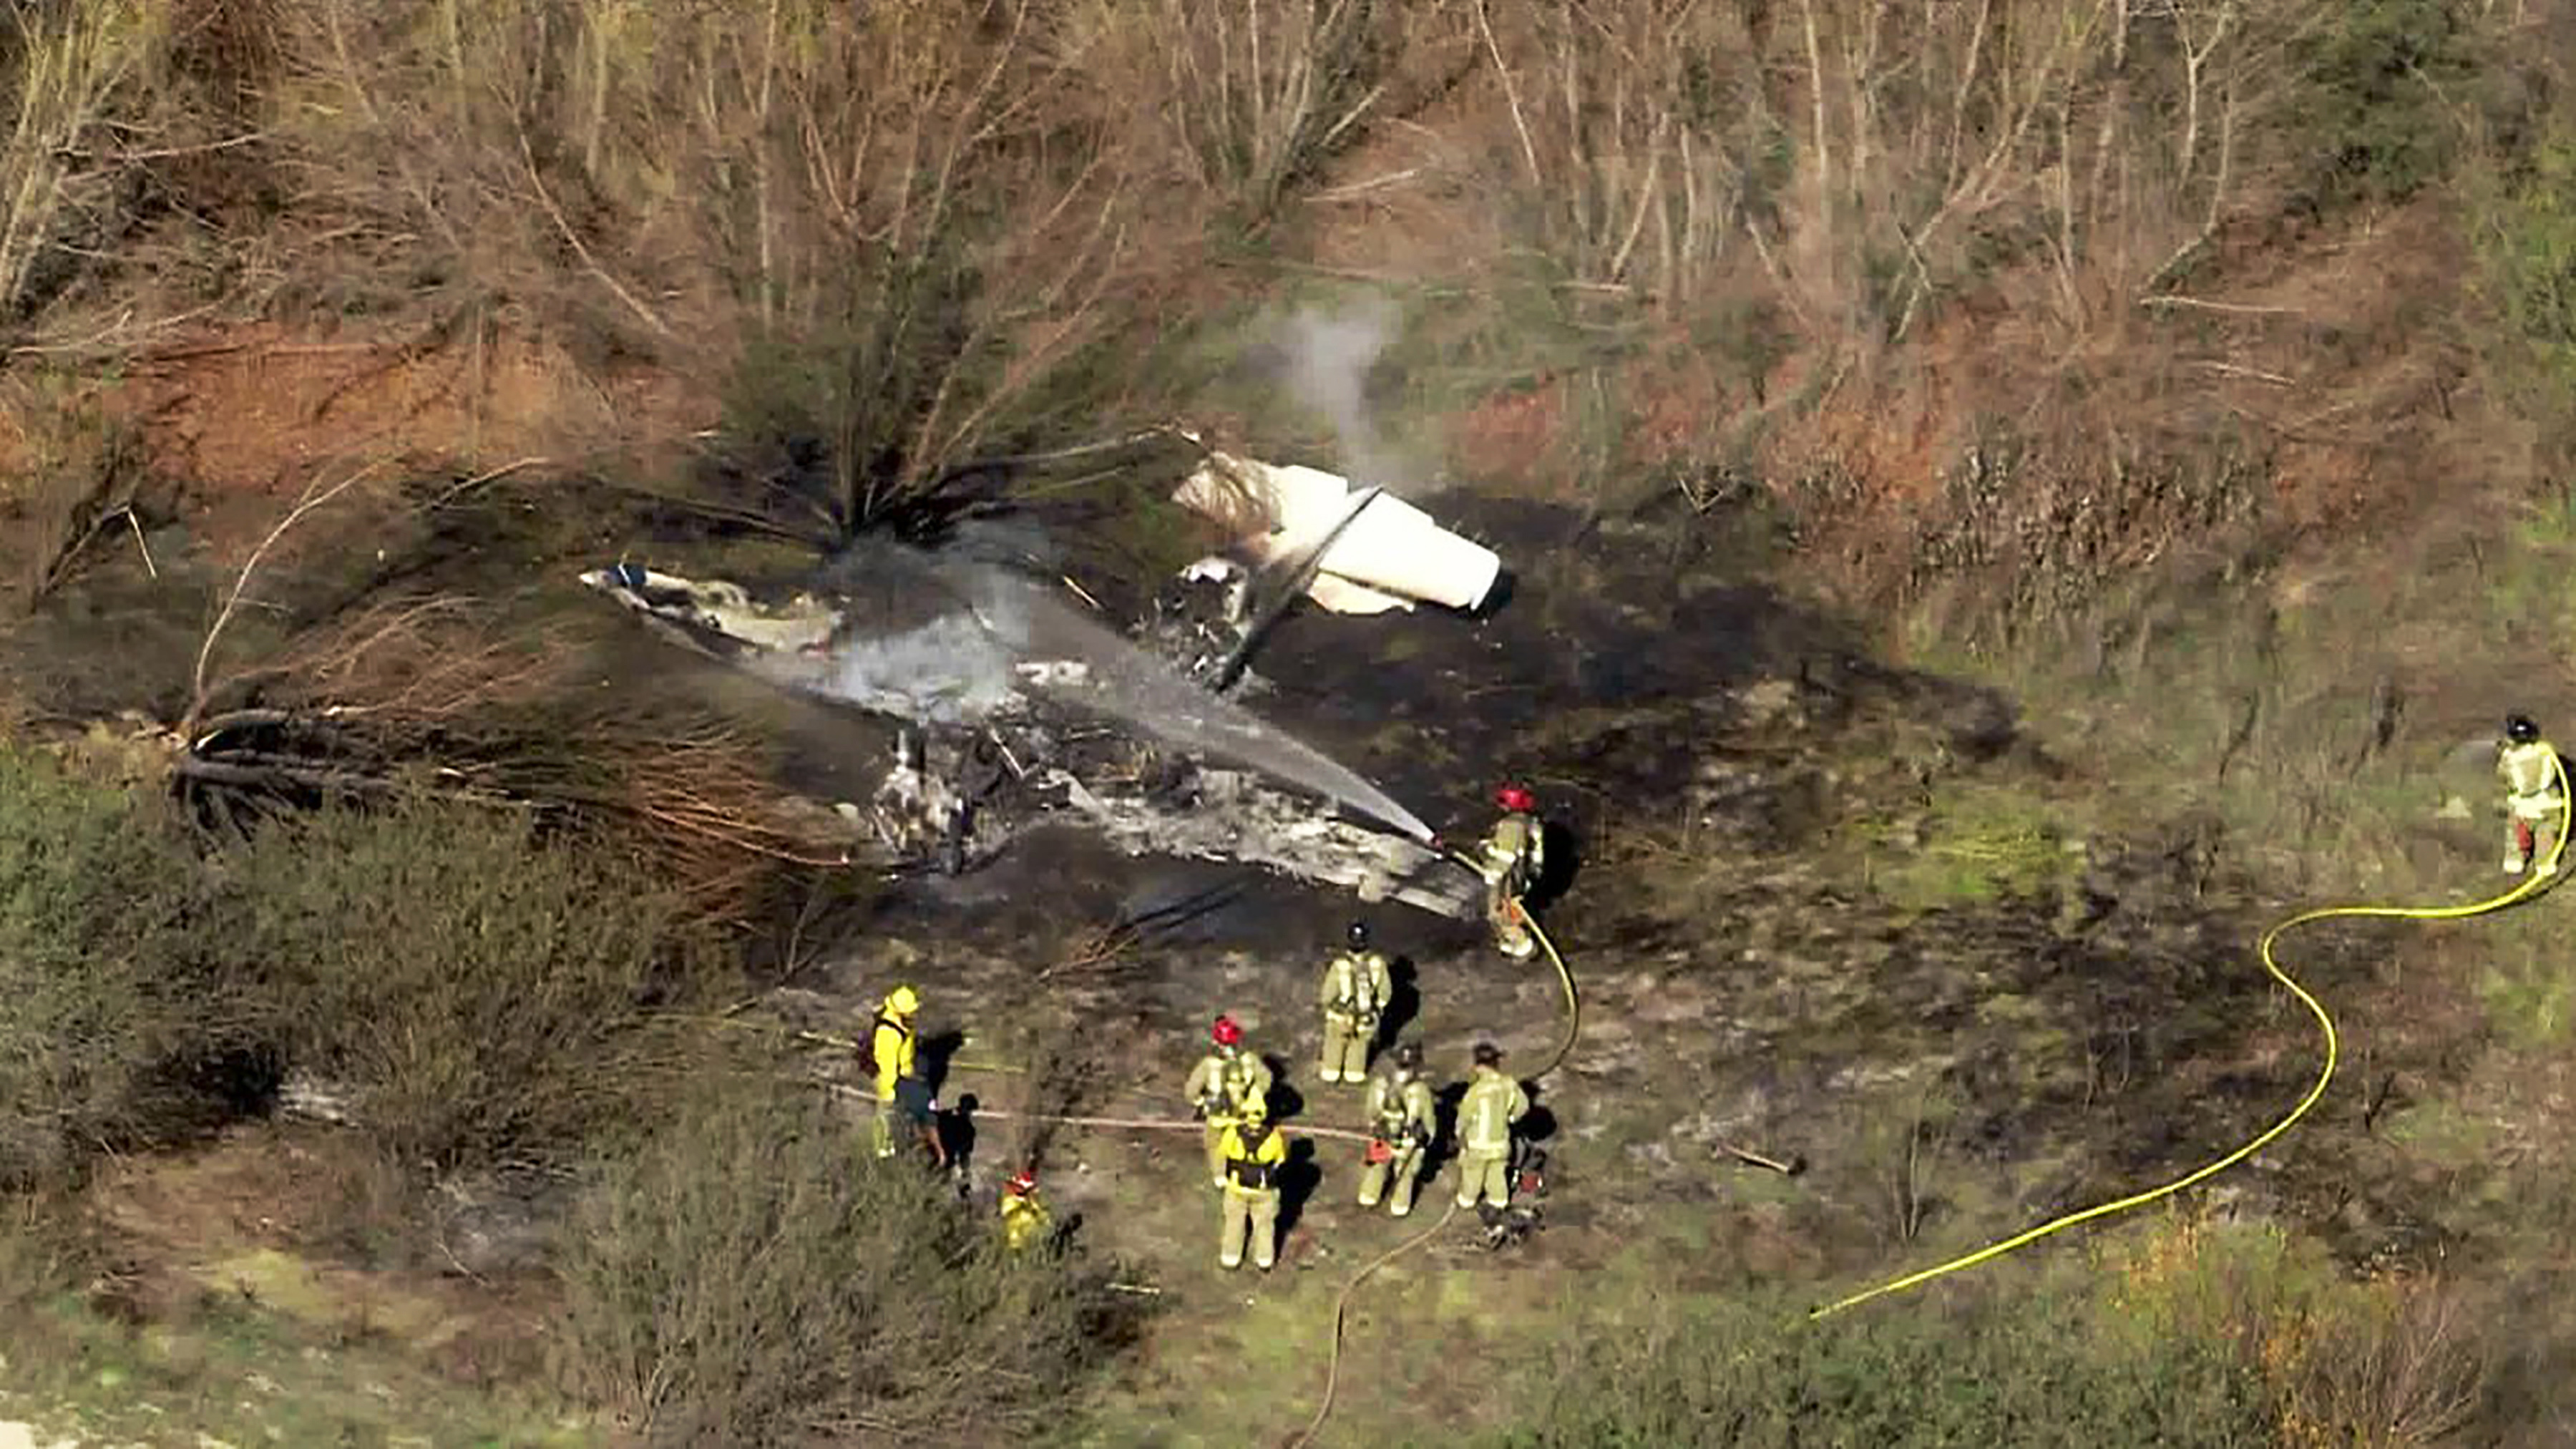 4 killed in plane crash at Southern California airfield